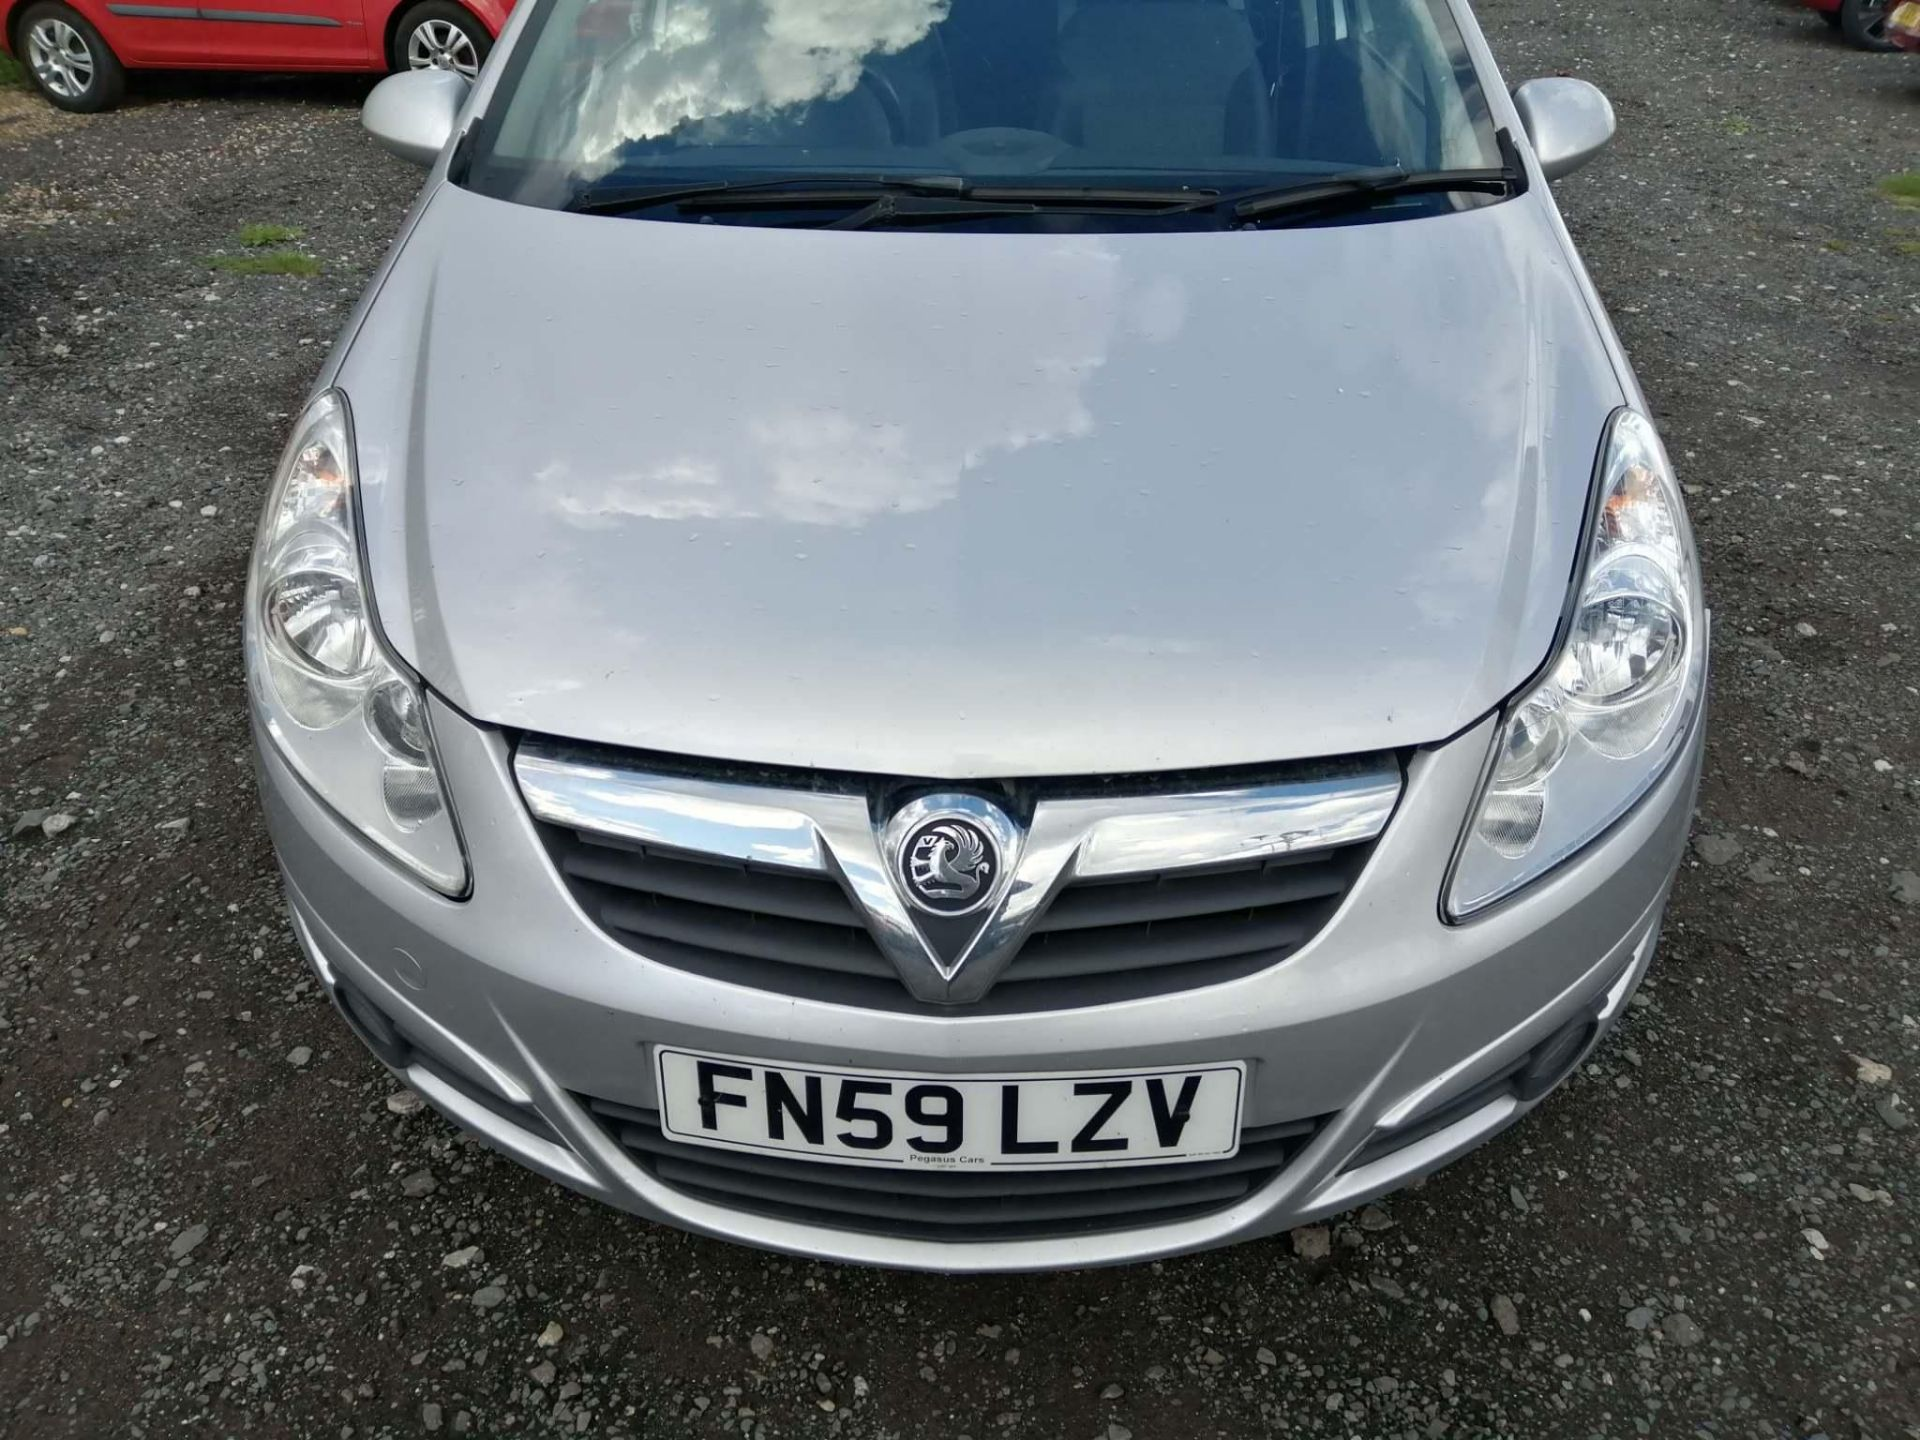 2010 Vauxhall Corsa 1.2 Design 3dr Hatchback - CL505 - NO VAT ON THE HAMMER - Location: Corby - Image 2 of 11